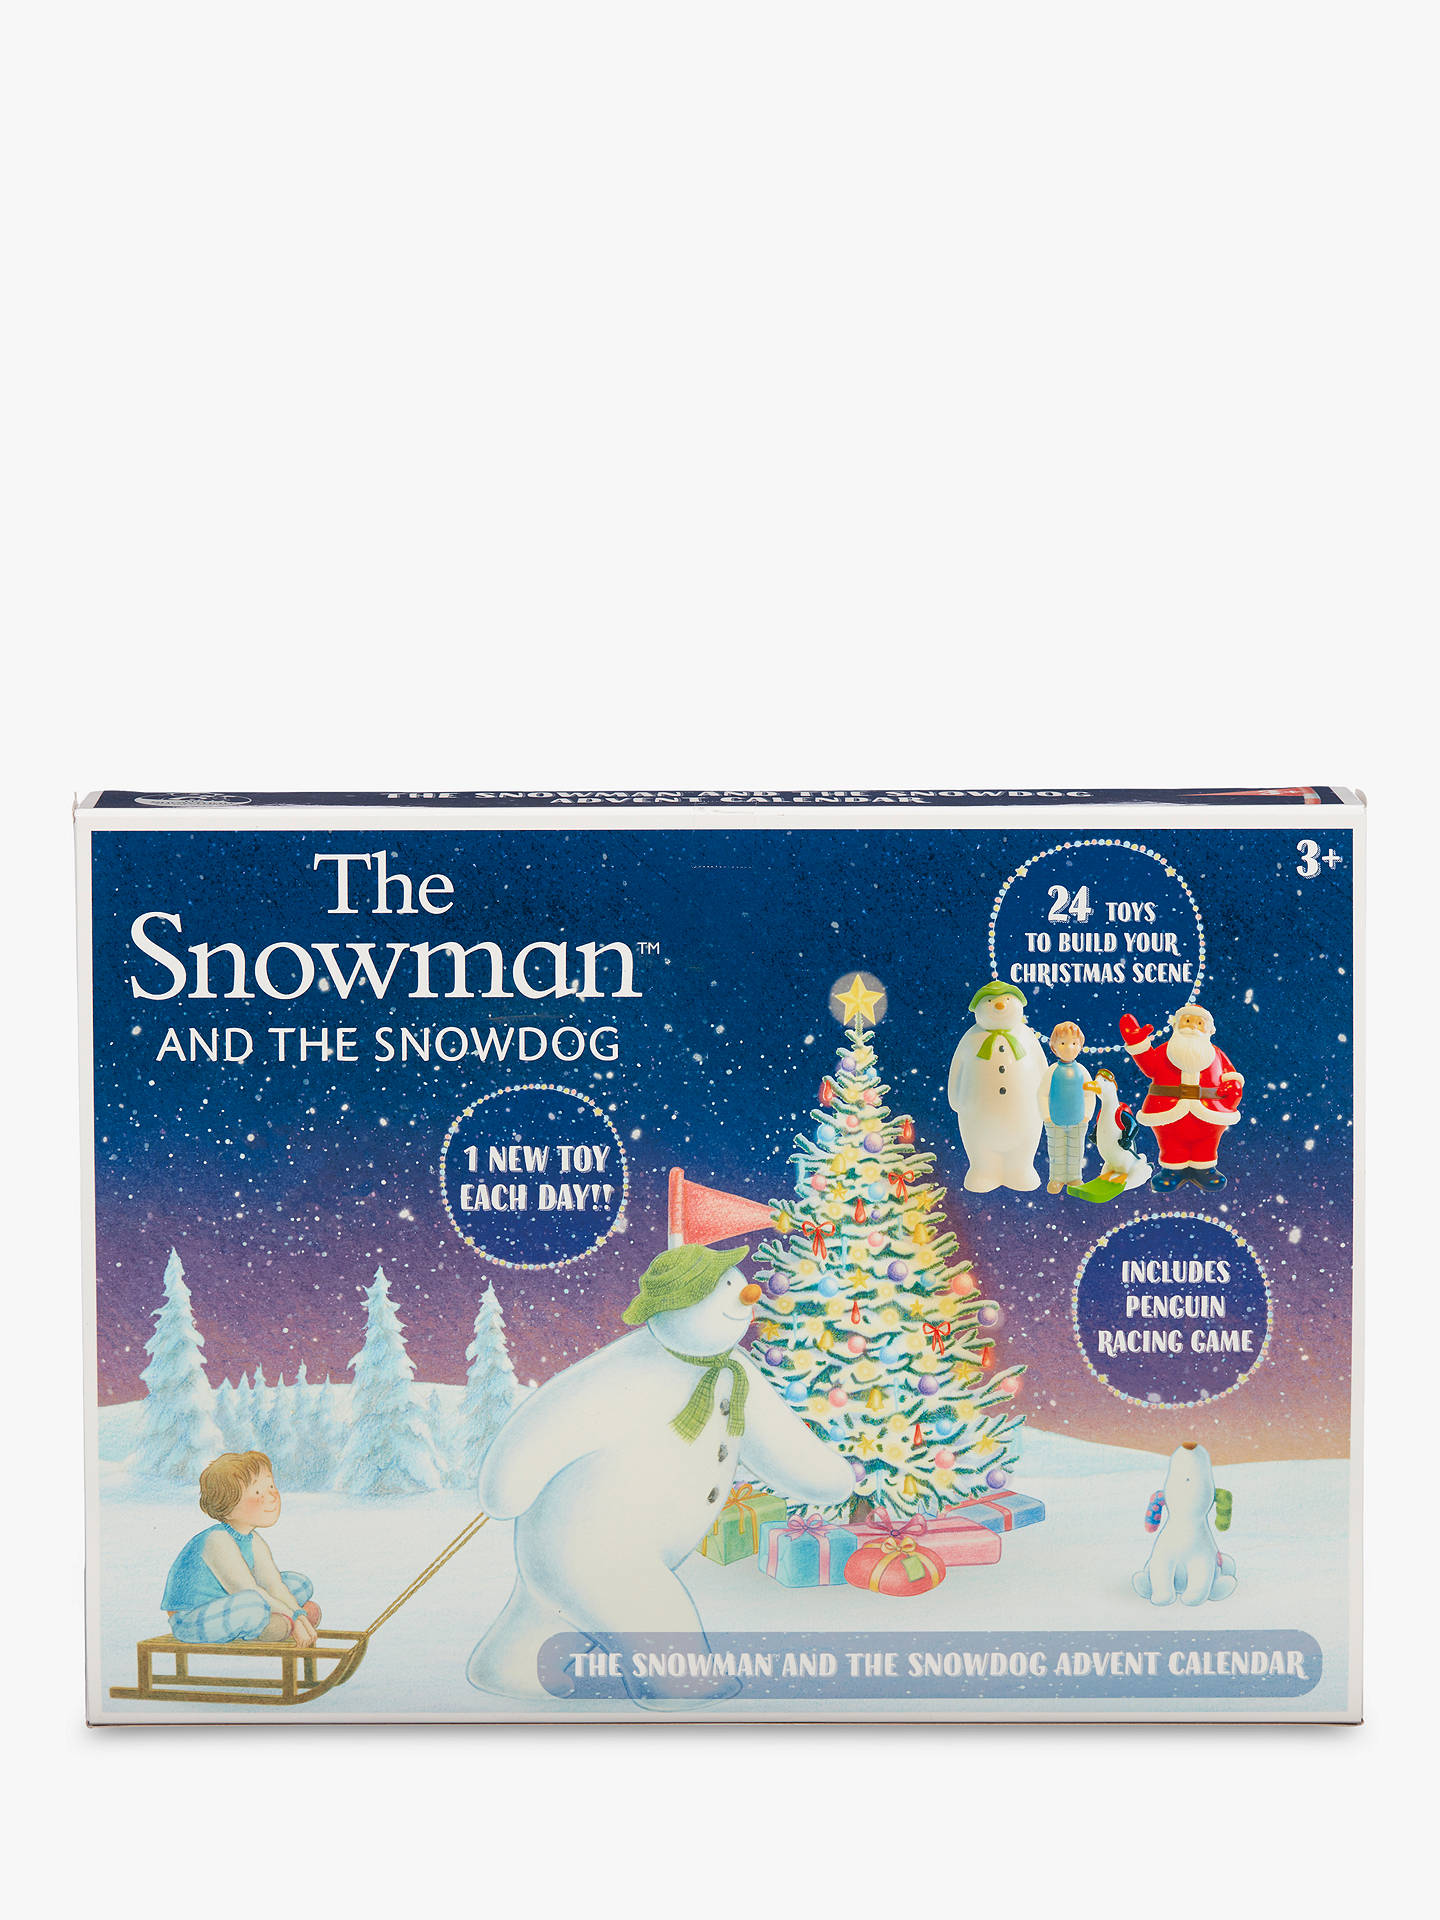 The Snowman And The Snowdog Toy Advent Calendar by The Snowman And The Snowdog